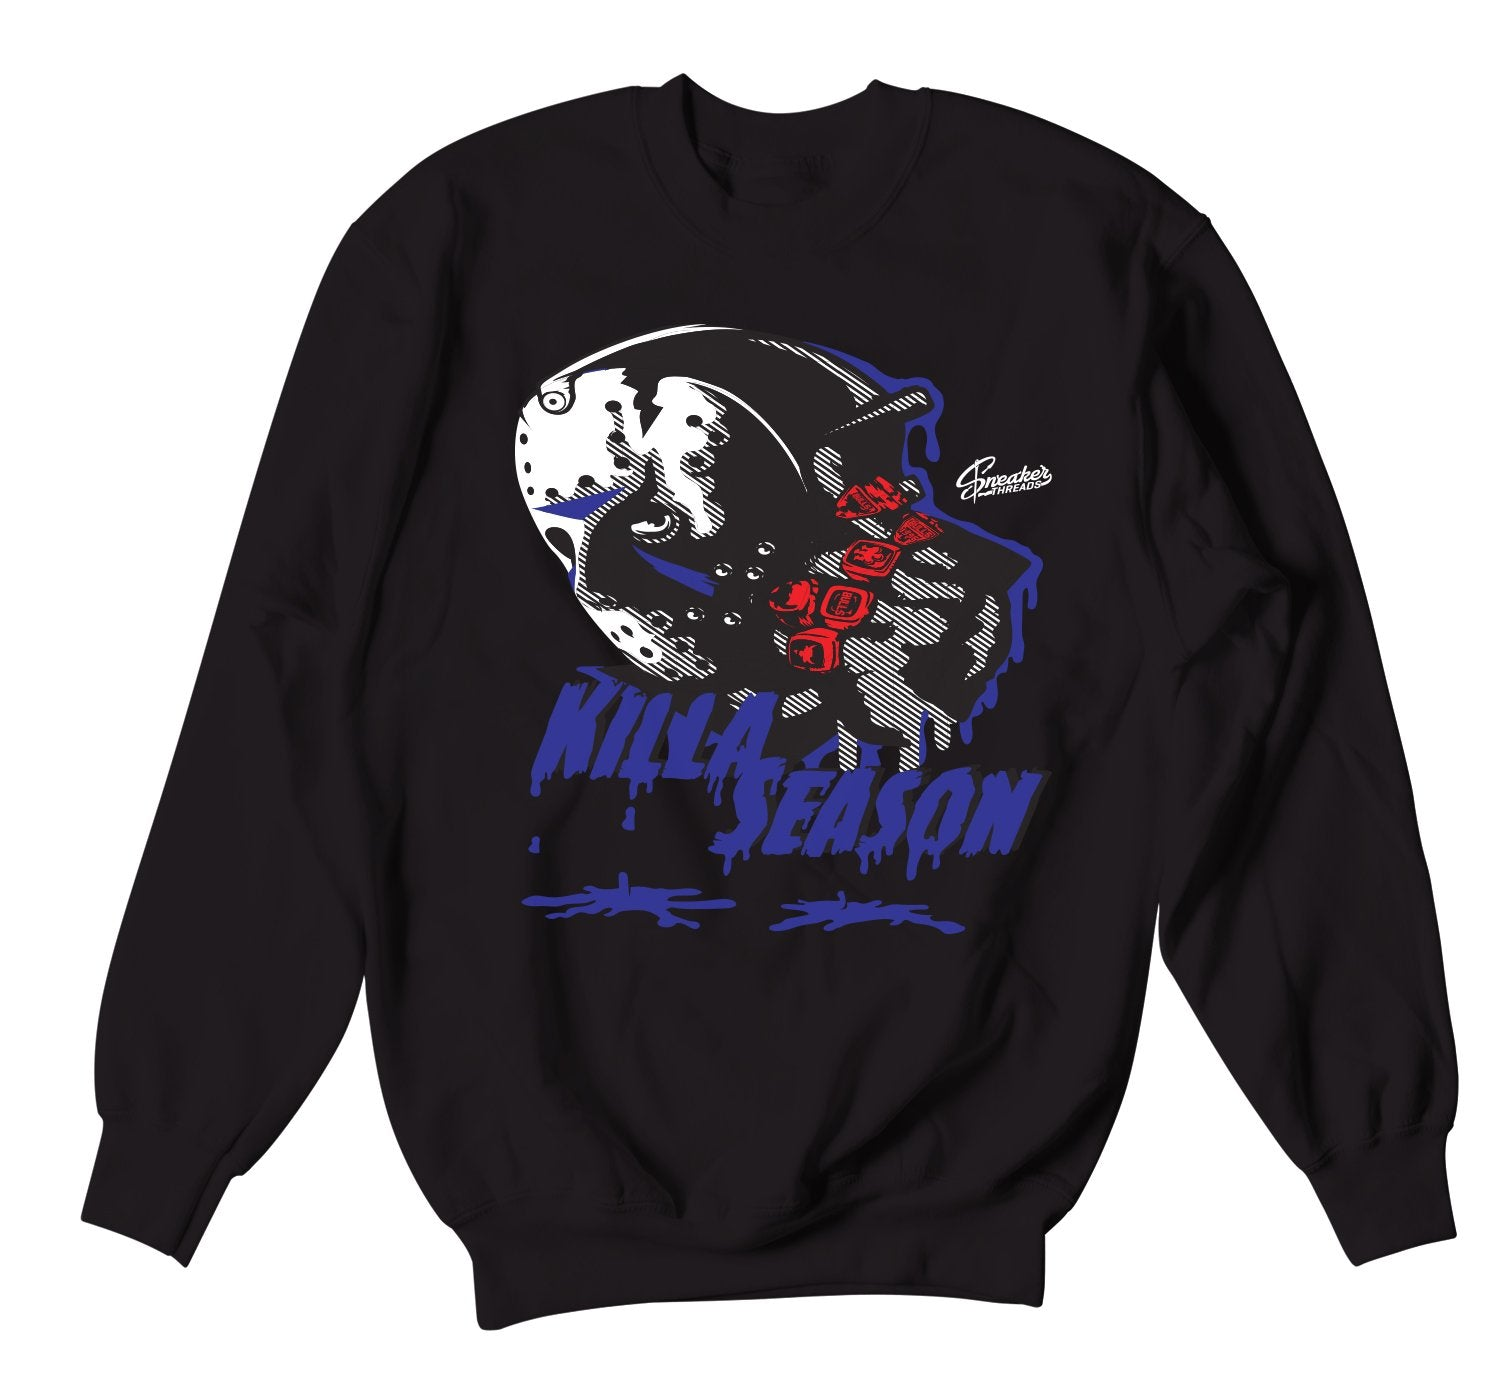 Jordan 4 Loyal Blue sneaker collection matching crewneck sweaters